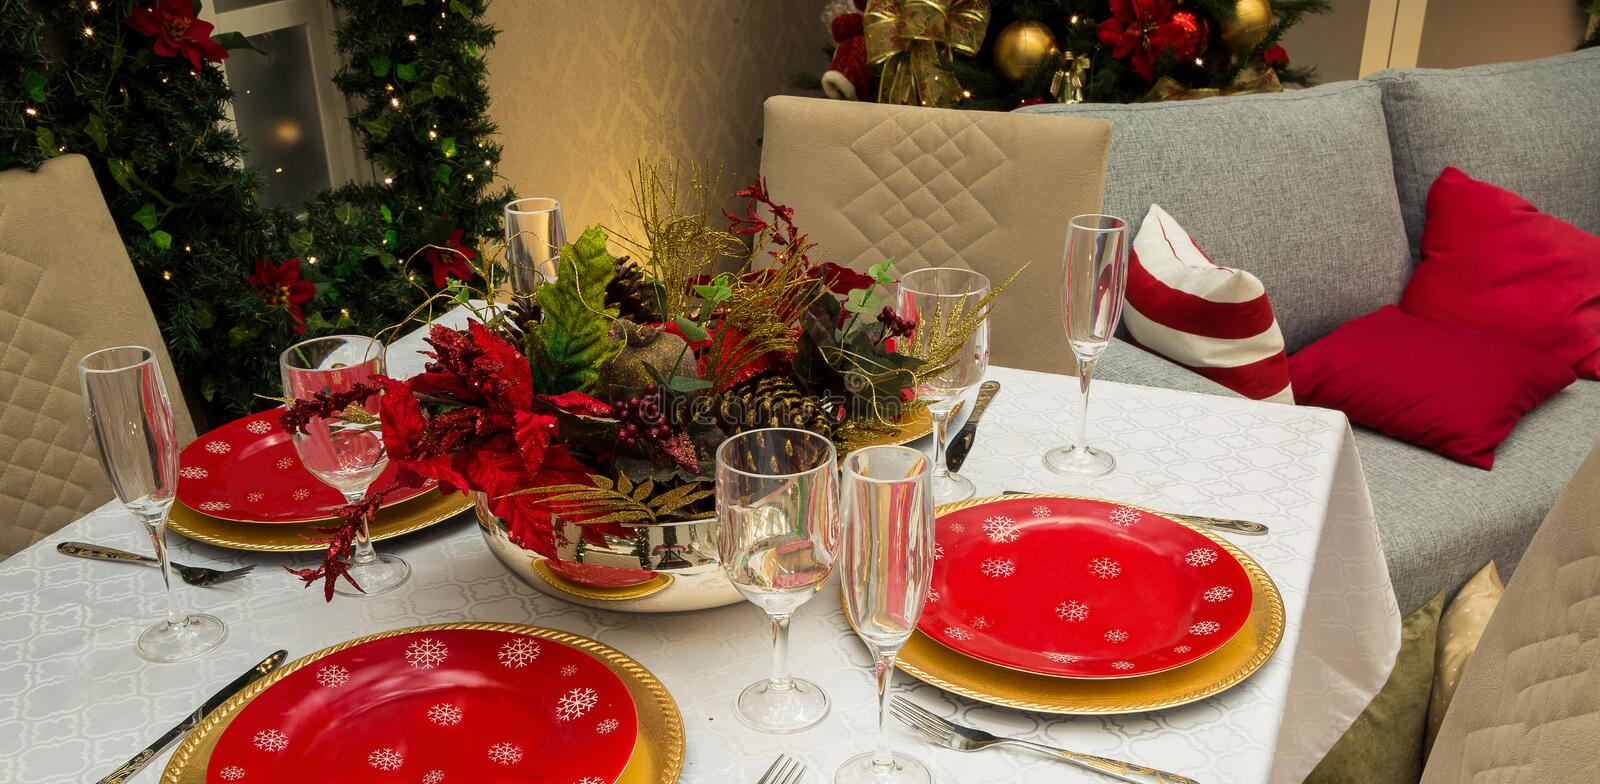 Christmas Family Dinner Table. Decorated royalty free stock image